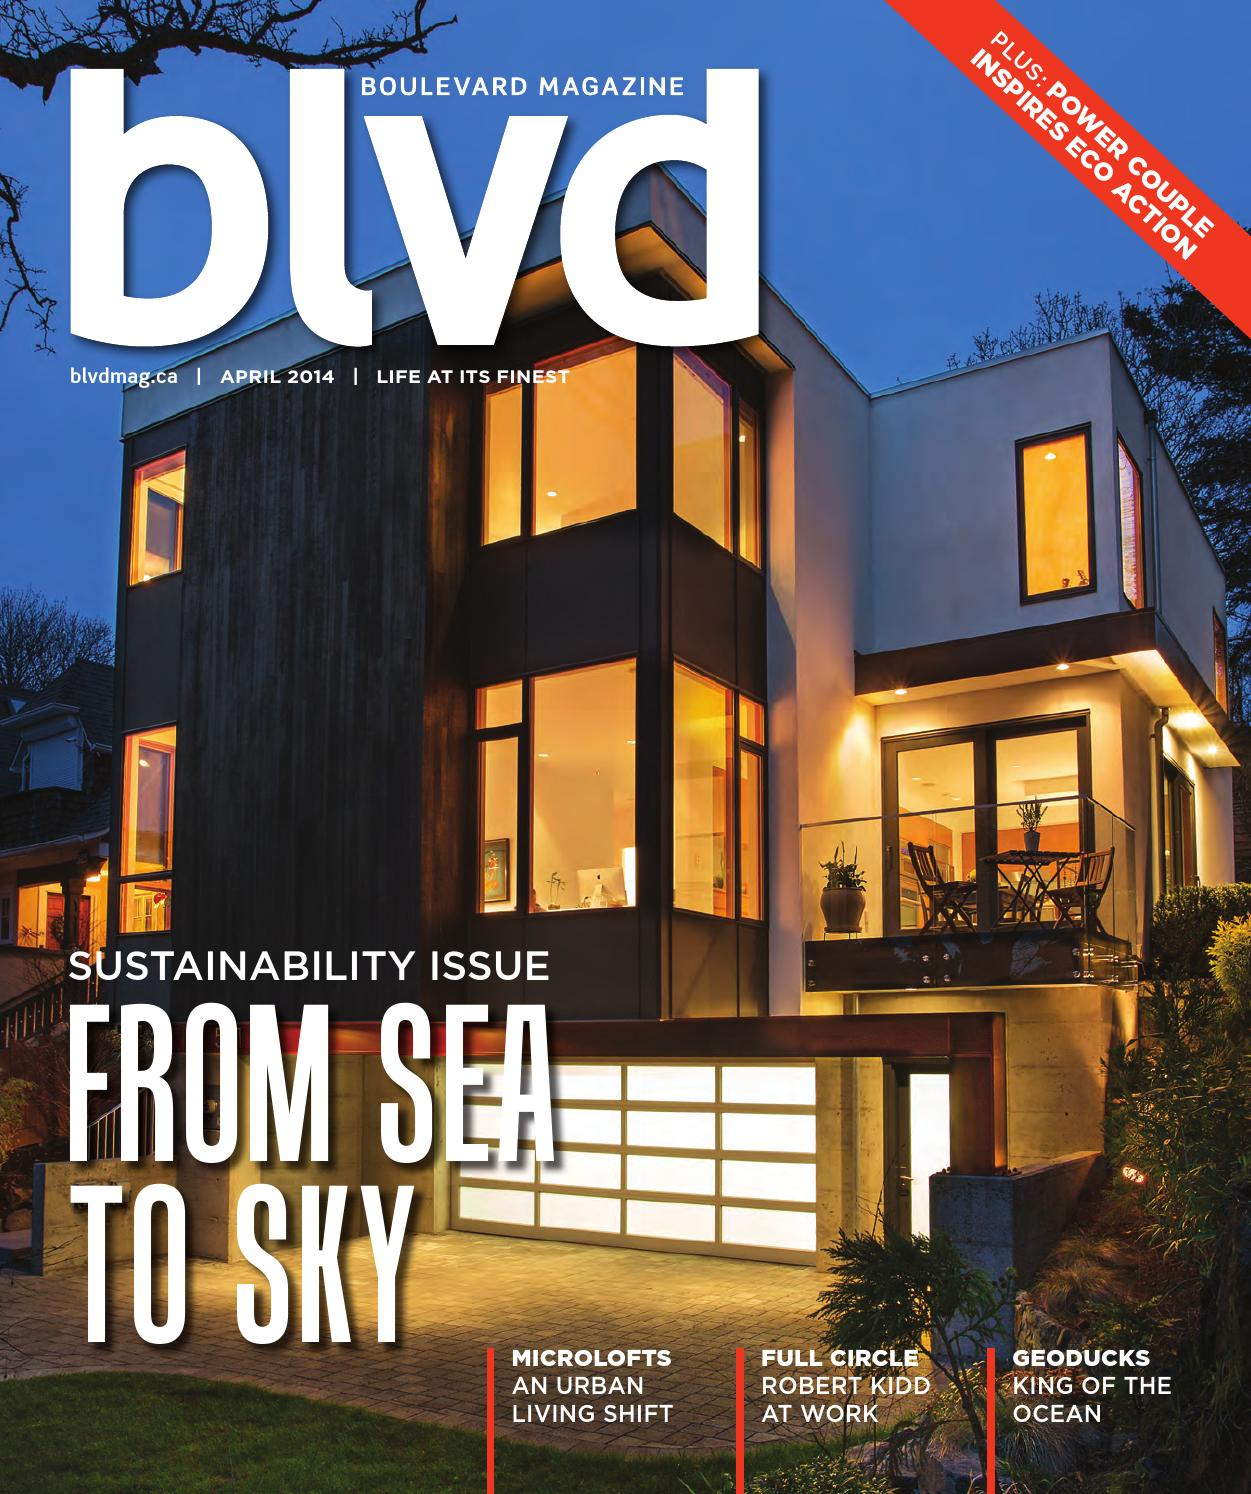 1b7a54c405 Boulevard Magazine - April 2014 Issue by Boulevard Magazine - issuu